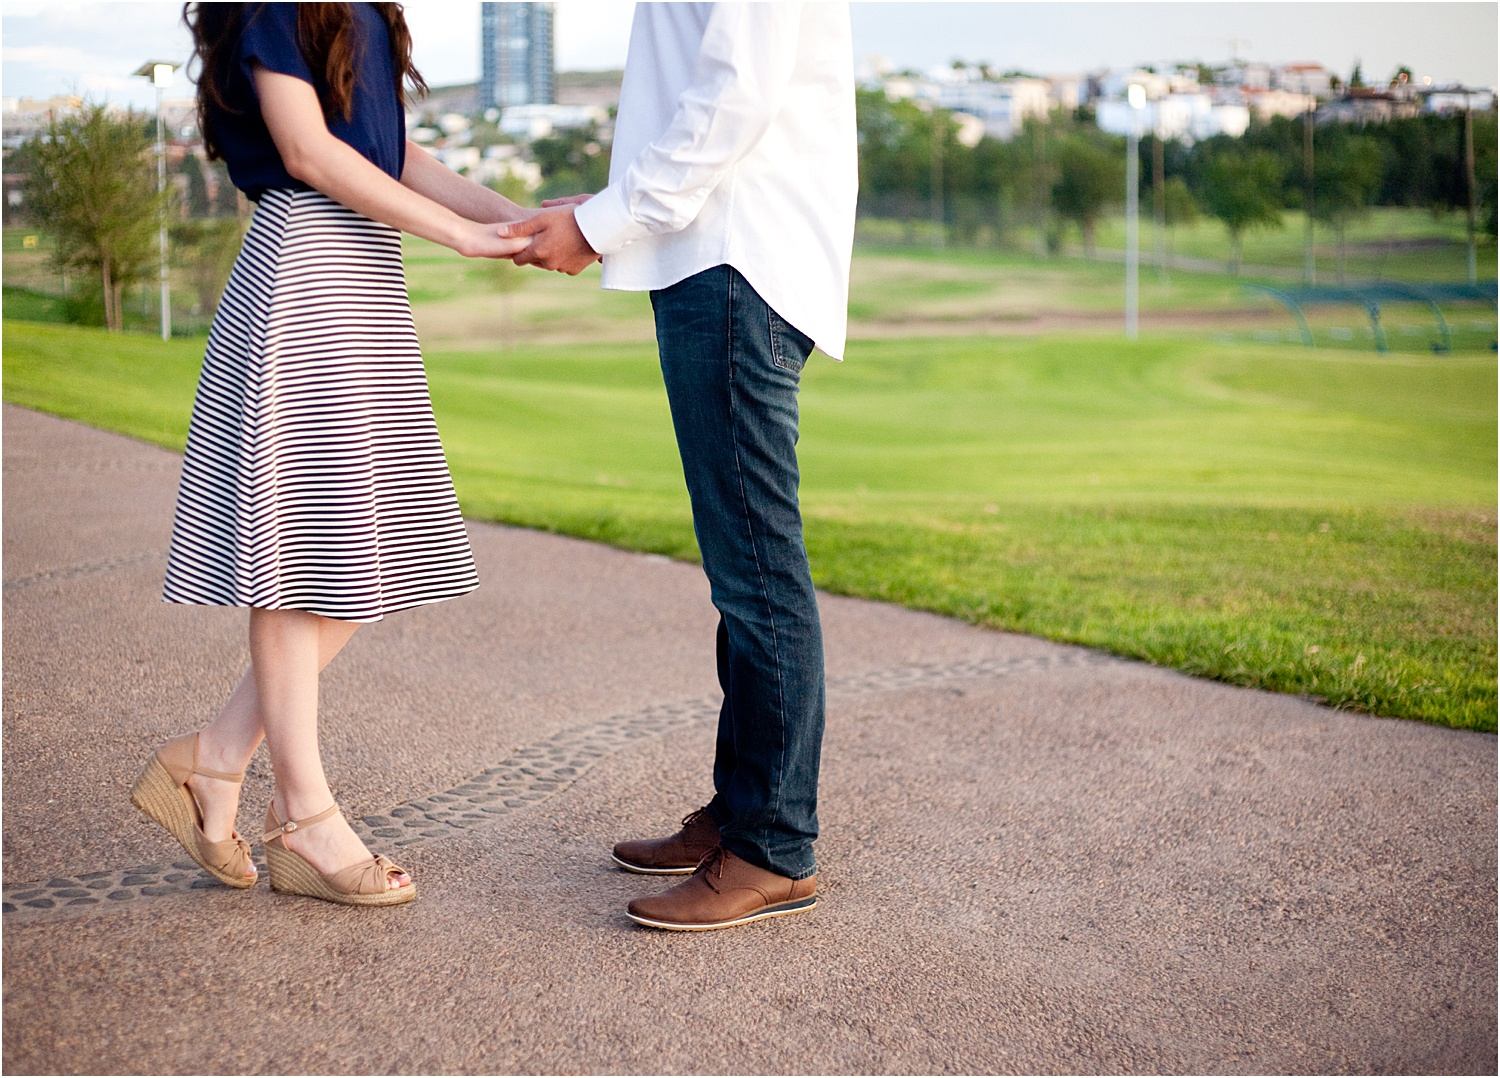 3 - Guide to the Best Poses for Engagement Photos